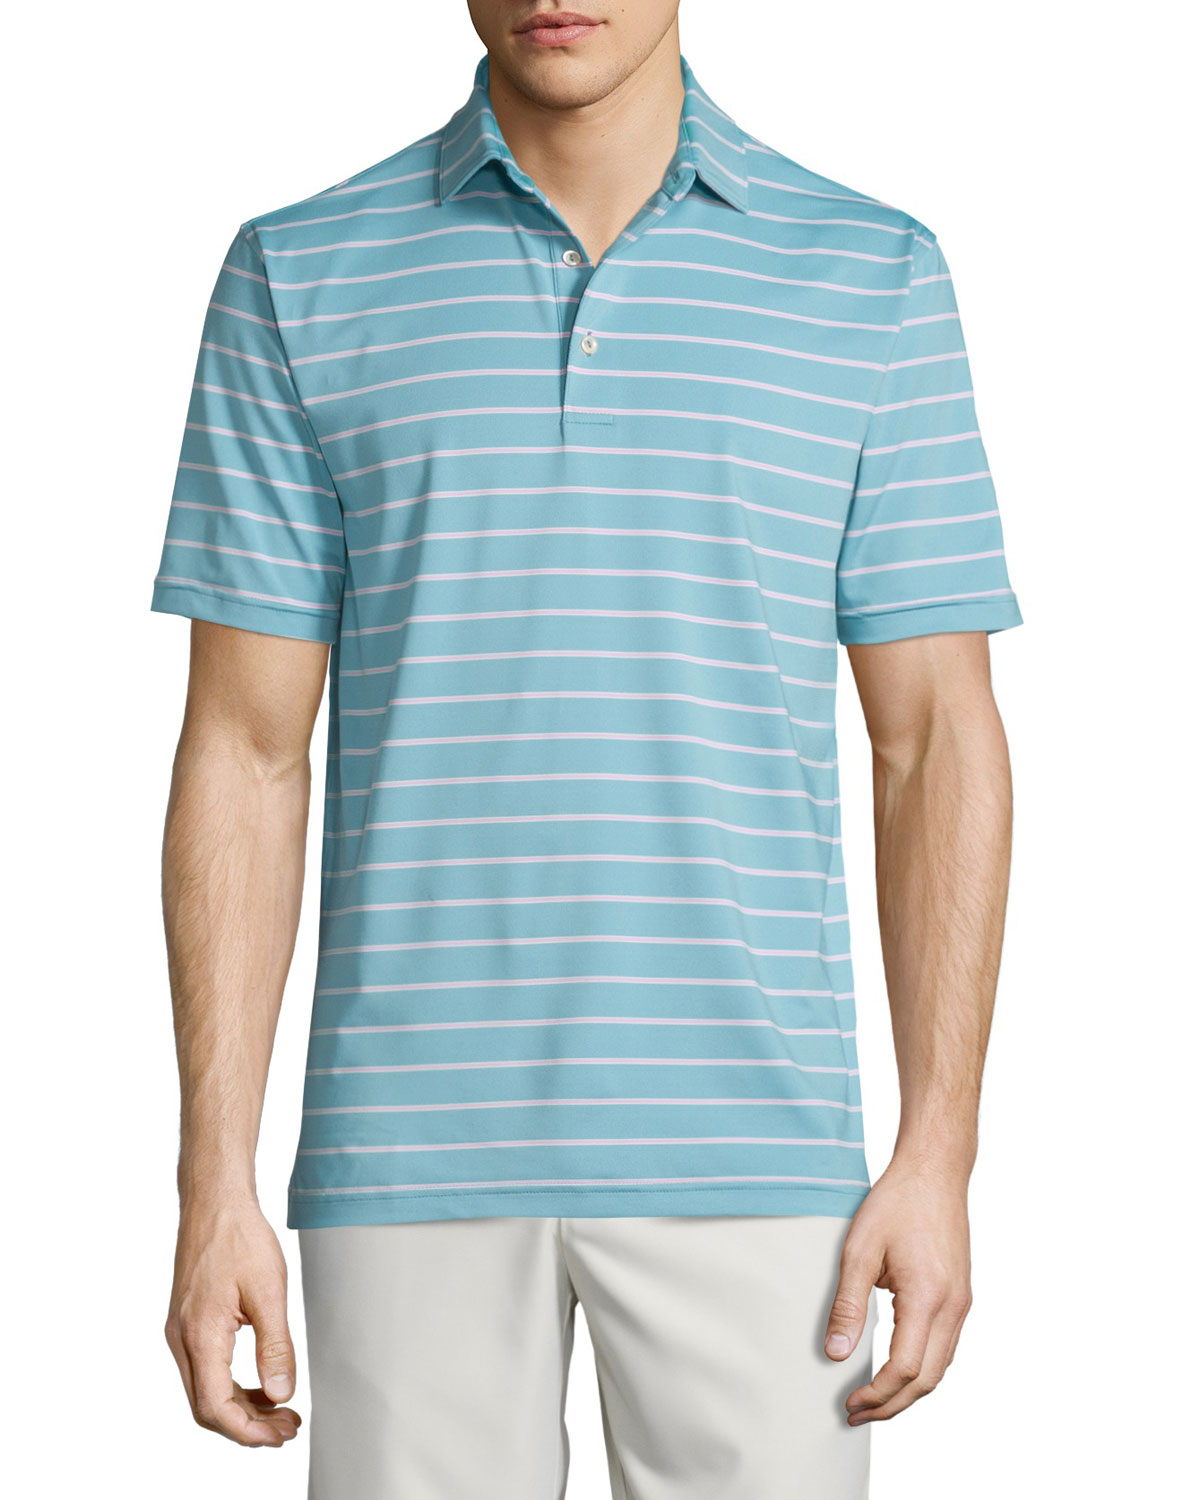 Peter millar tradeshow striped short sleeve jersey polo for Peter millar polo shirts